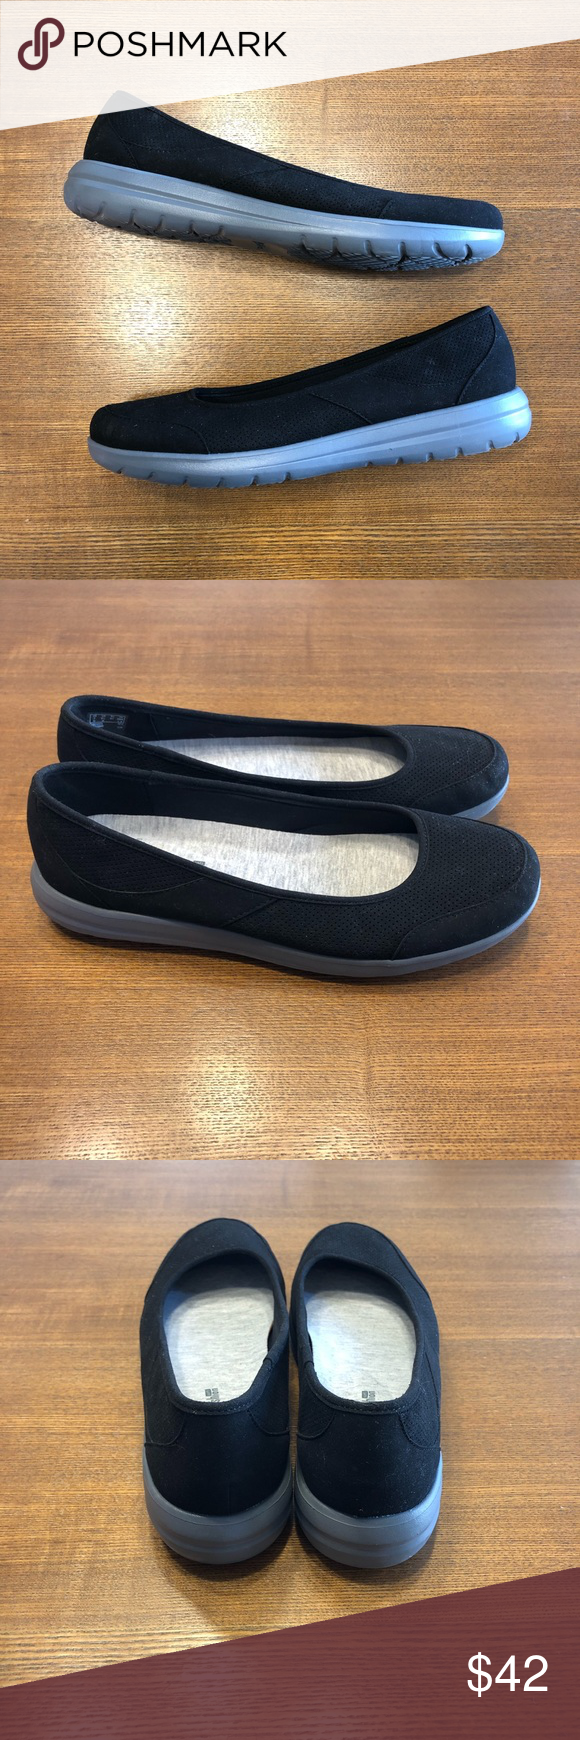 Slip on shoes, Clarks shoes, Black suede